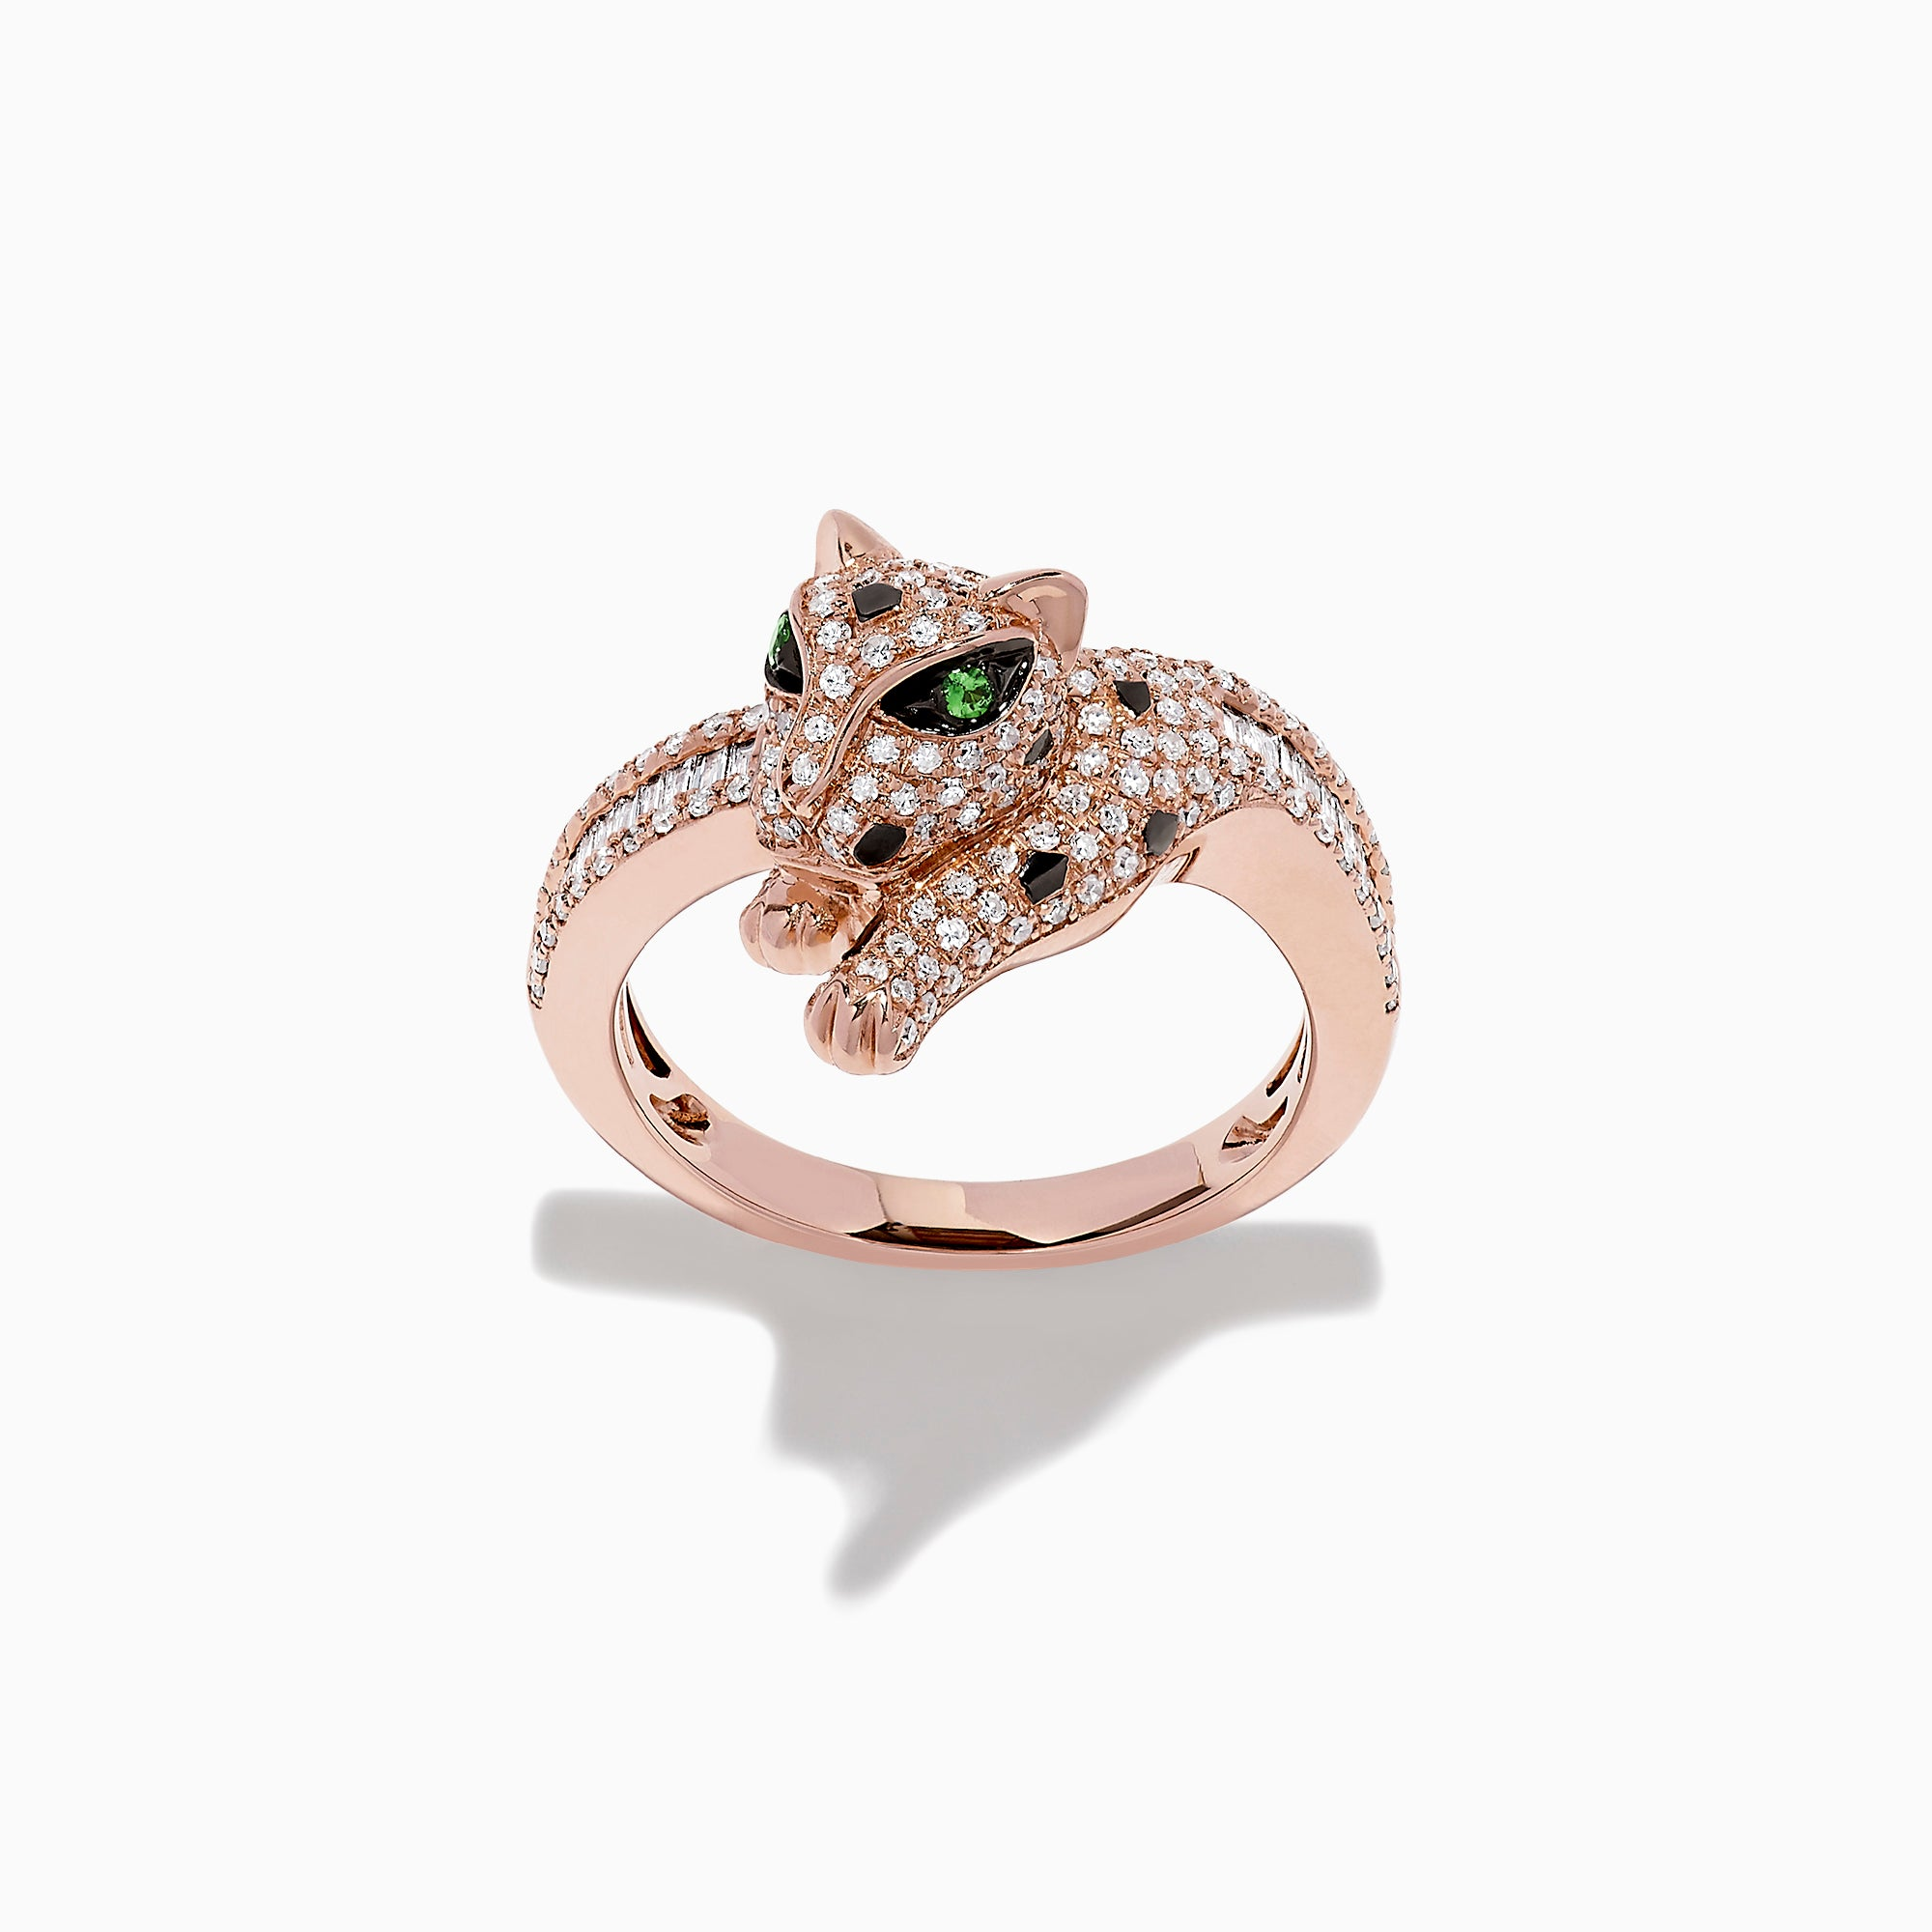 Effy Signature 14K Rose Gold Diamond and Tsavorite Ring, 0.72 TCW